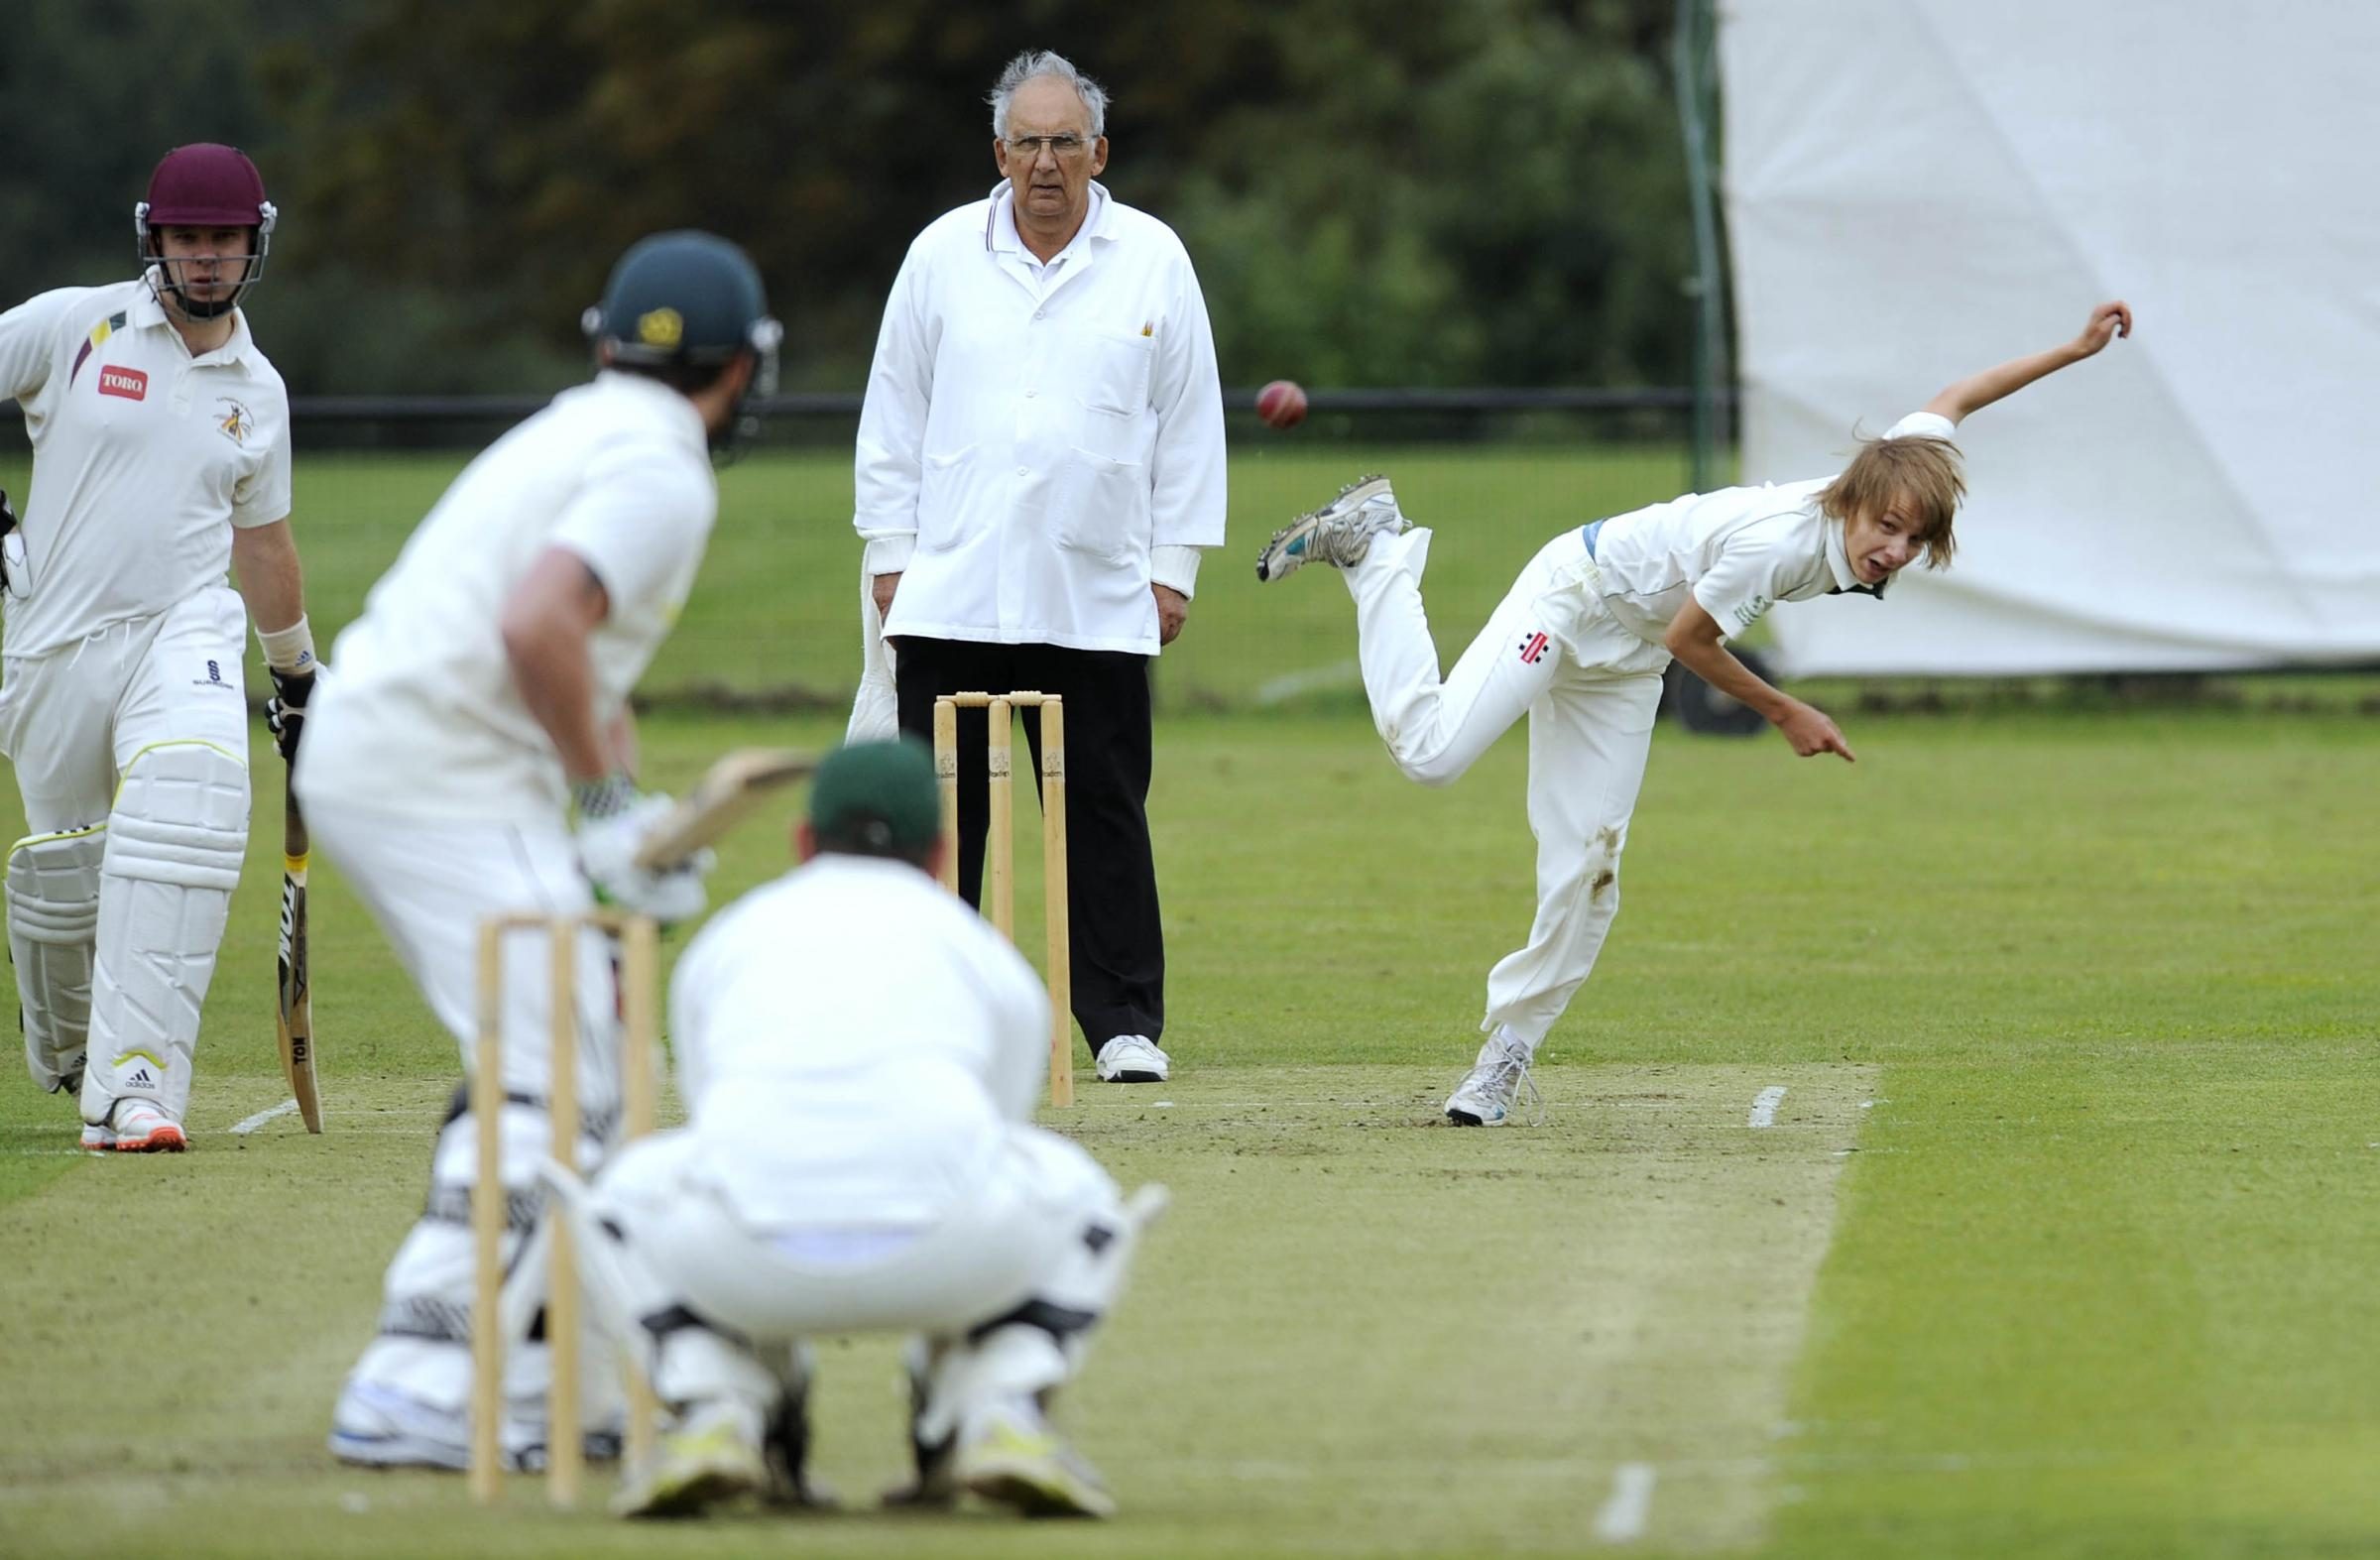 Chipping Norton bowler Danny Molyneux sends down a delivery in their nine-wicket success against Farindgon in Division 2 Pictures: David Fleming